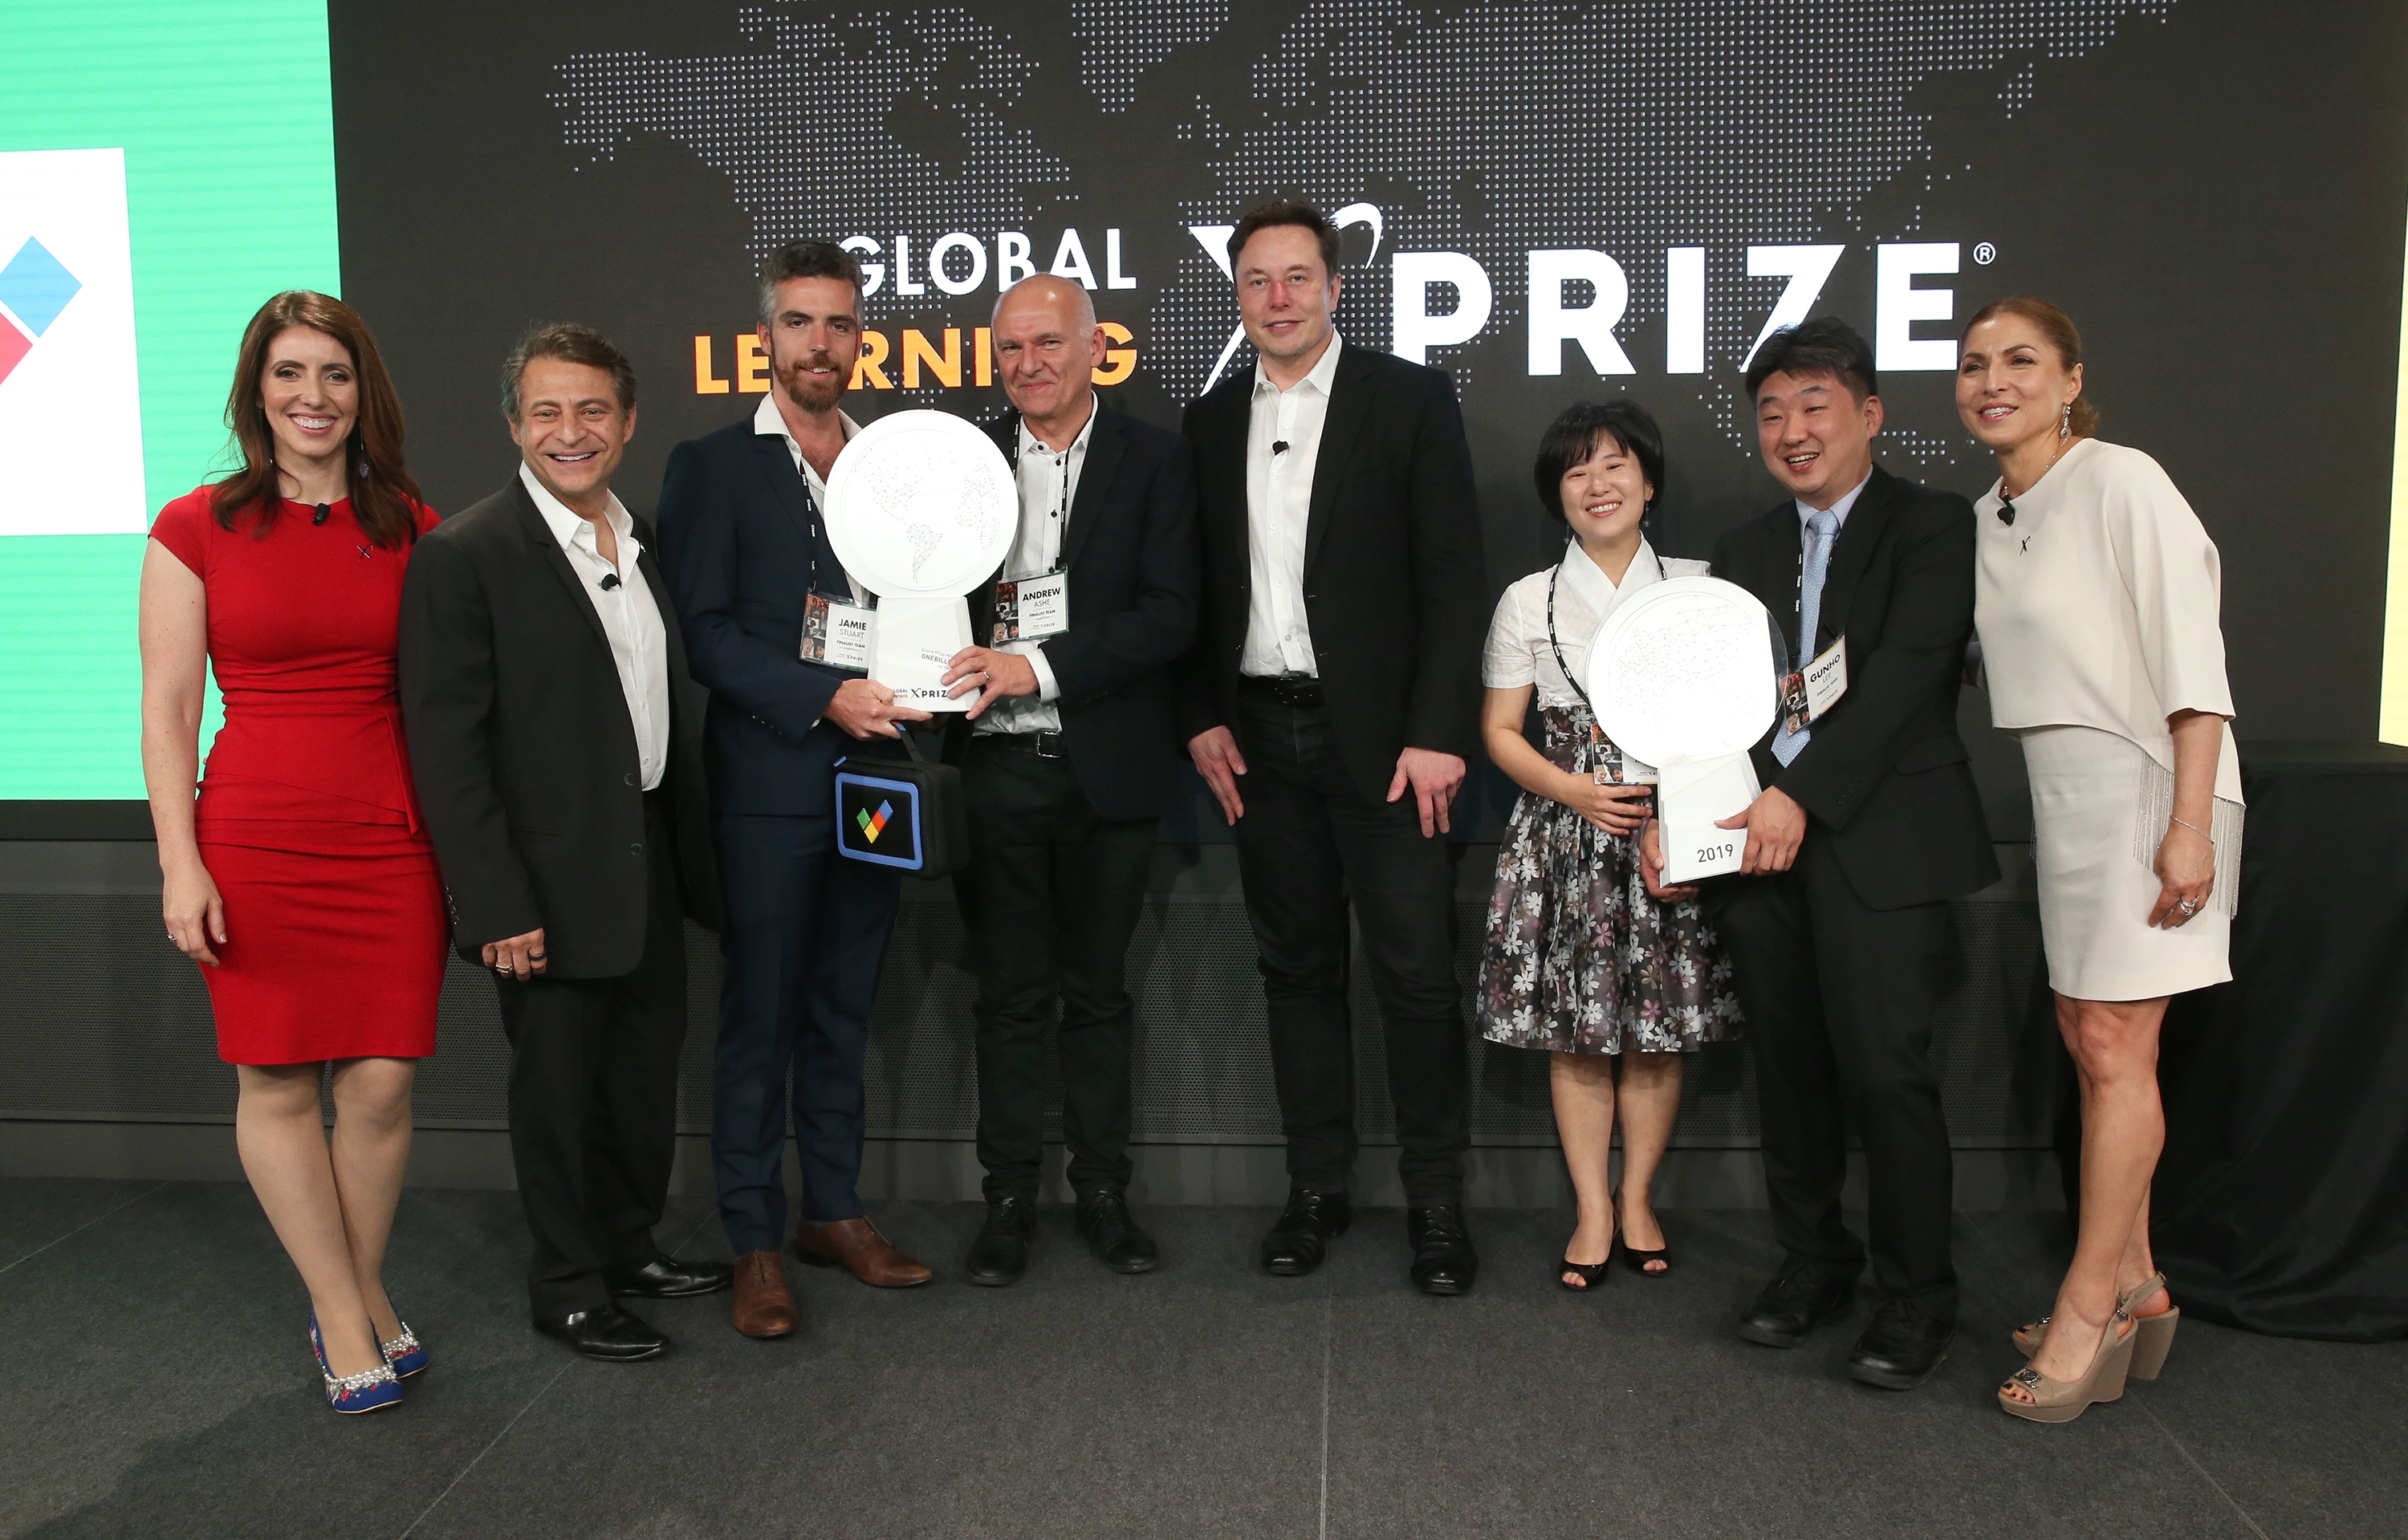 X-Prize CEO applaudes TVP during the Global Education Xprize awards ceremony hosted at the Google's offices in Los Angeles, USA.